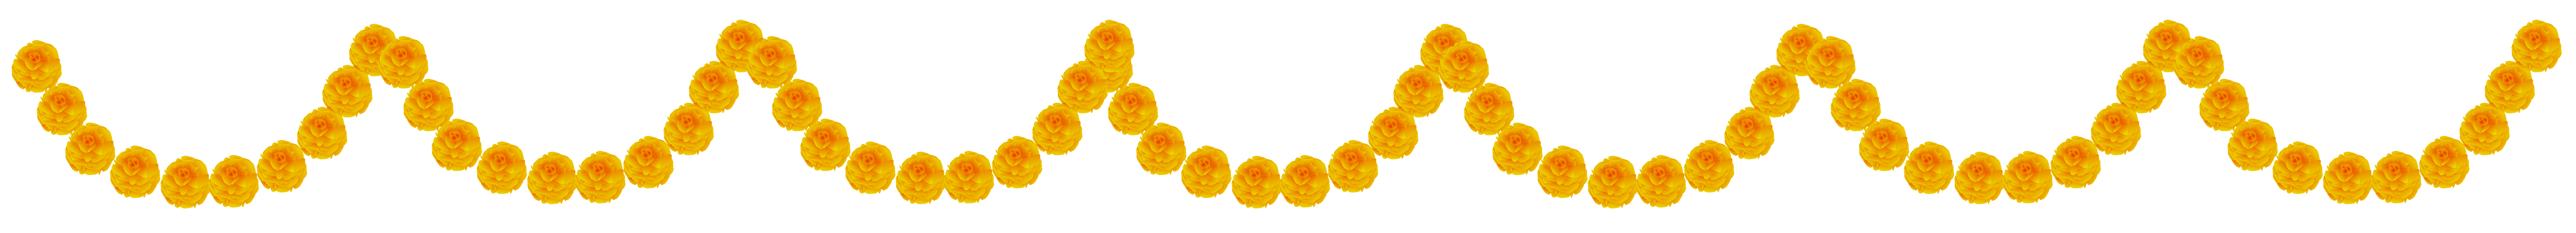 vector black and white library Flower Garland Transparent PNG Clip Art Image